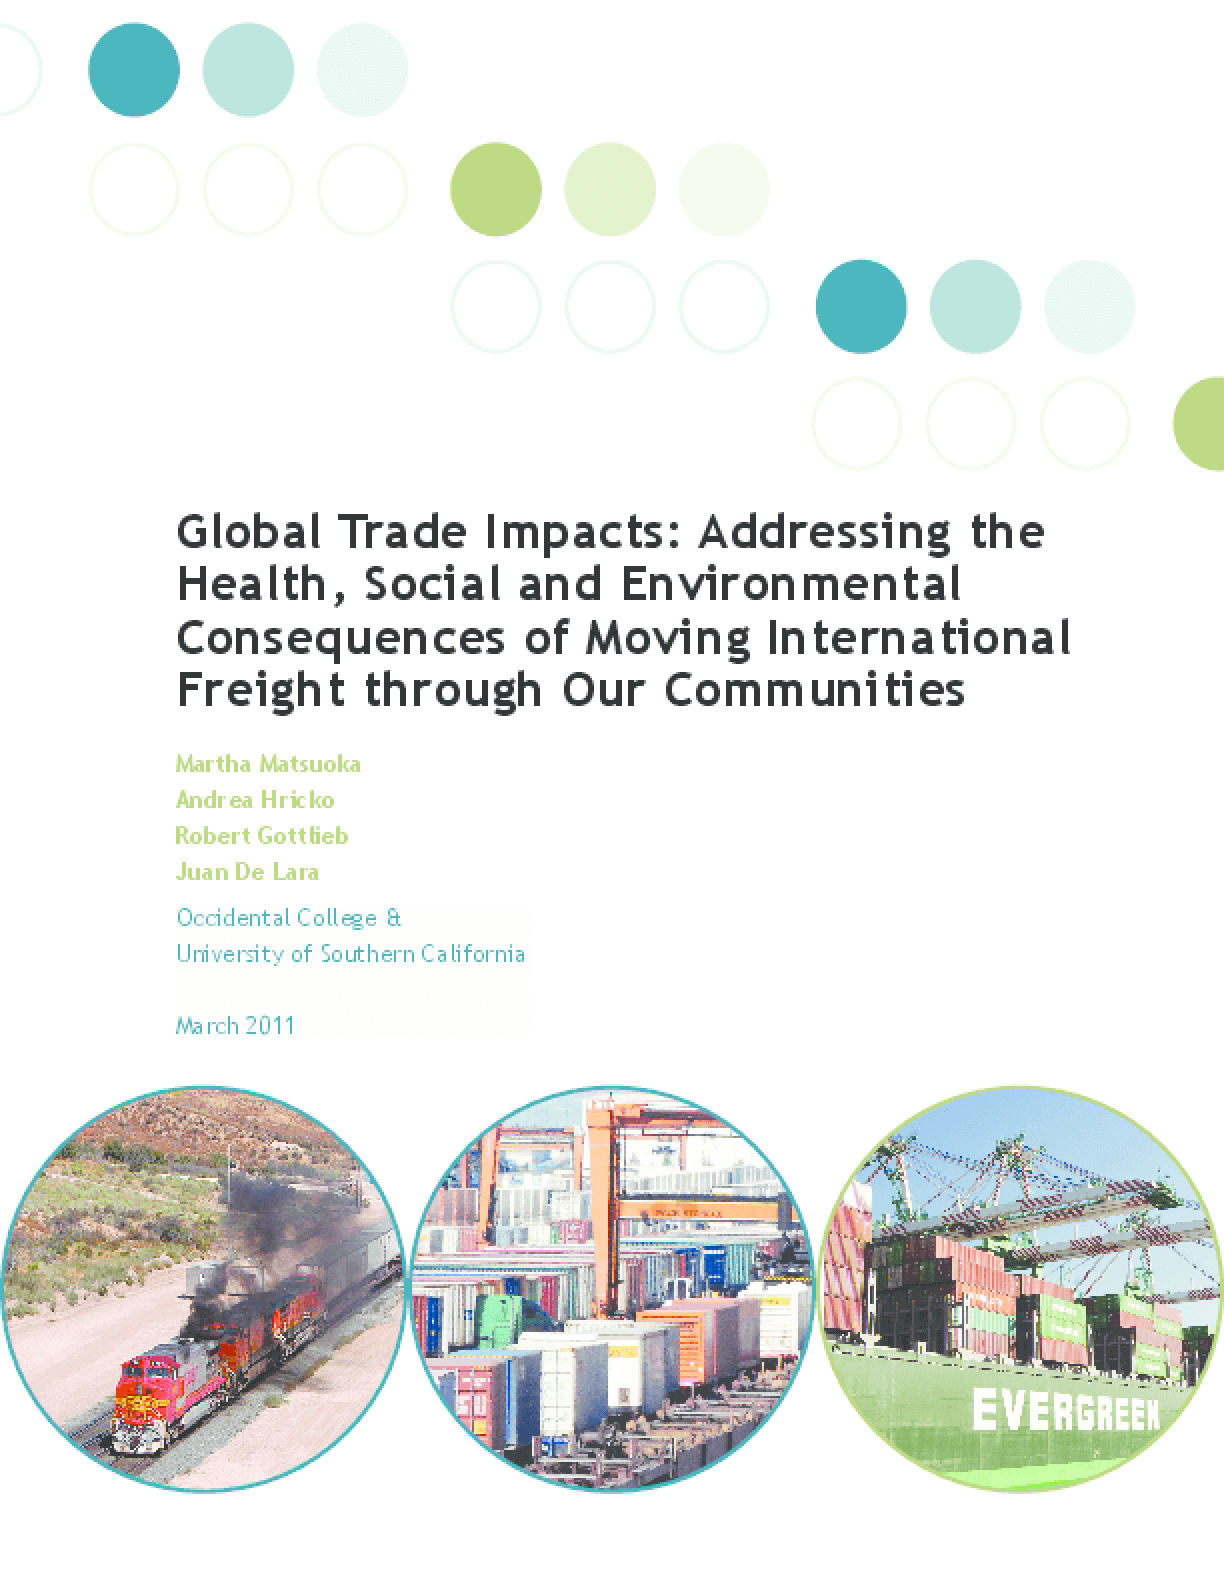 Global Trade Impacts: Addressing the Health, Social and Environmental Consequences of Moving International Freight Through Our Communities